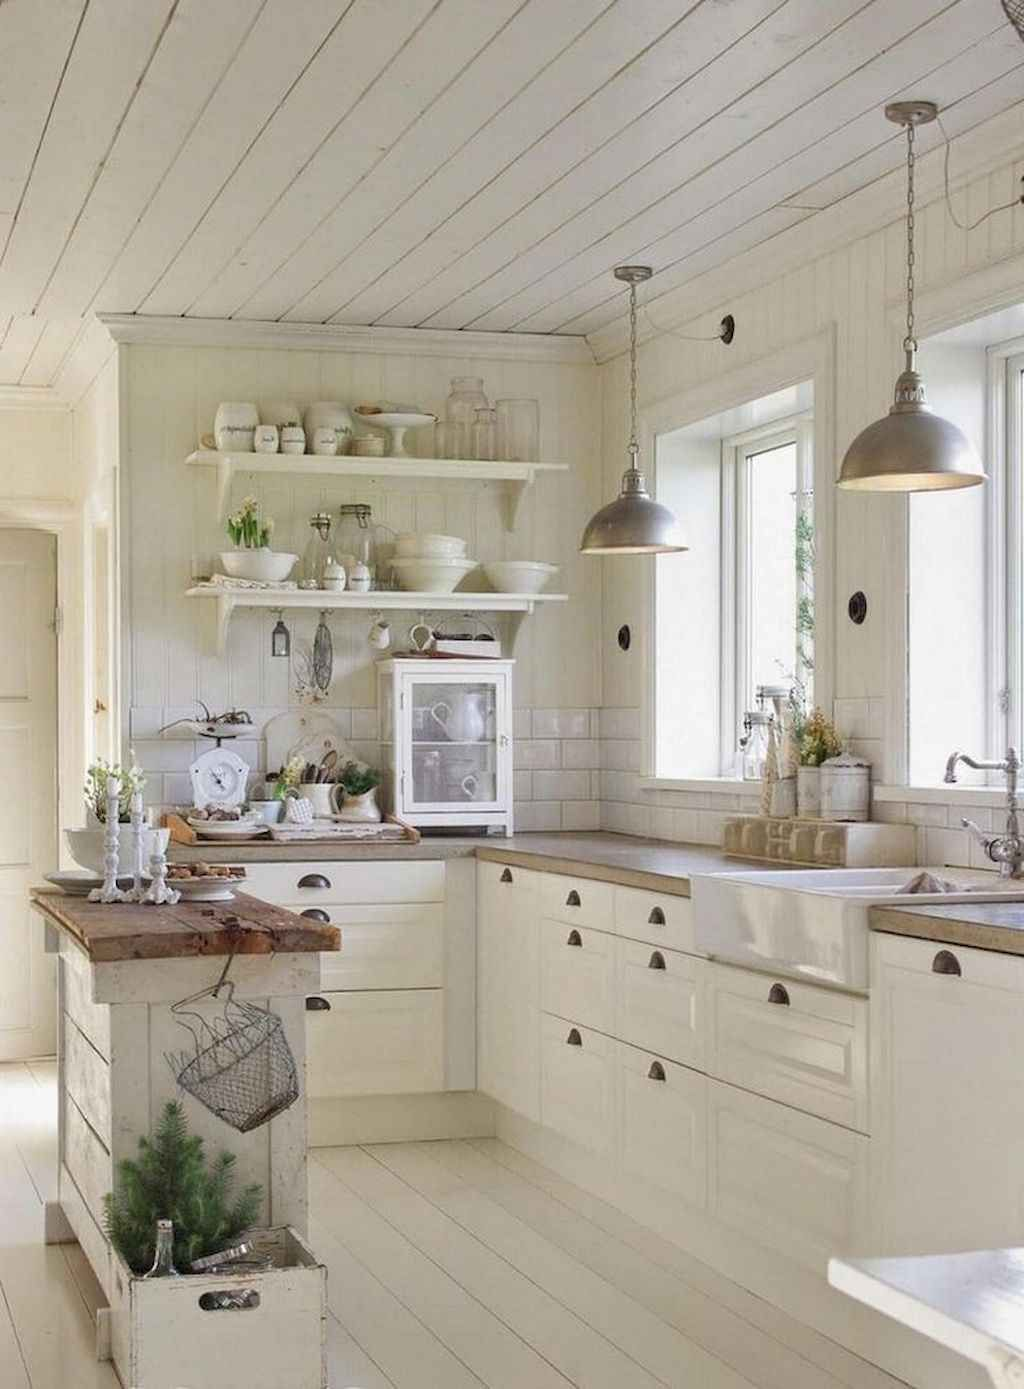 Kitchen Design And Remodeling Ideas Receive A See At Some Of Our Favorite Ki In 2020 Country Kitchen Decor French Country Decorating Kitchen Farmhouse Kitchen Design